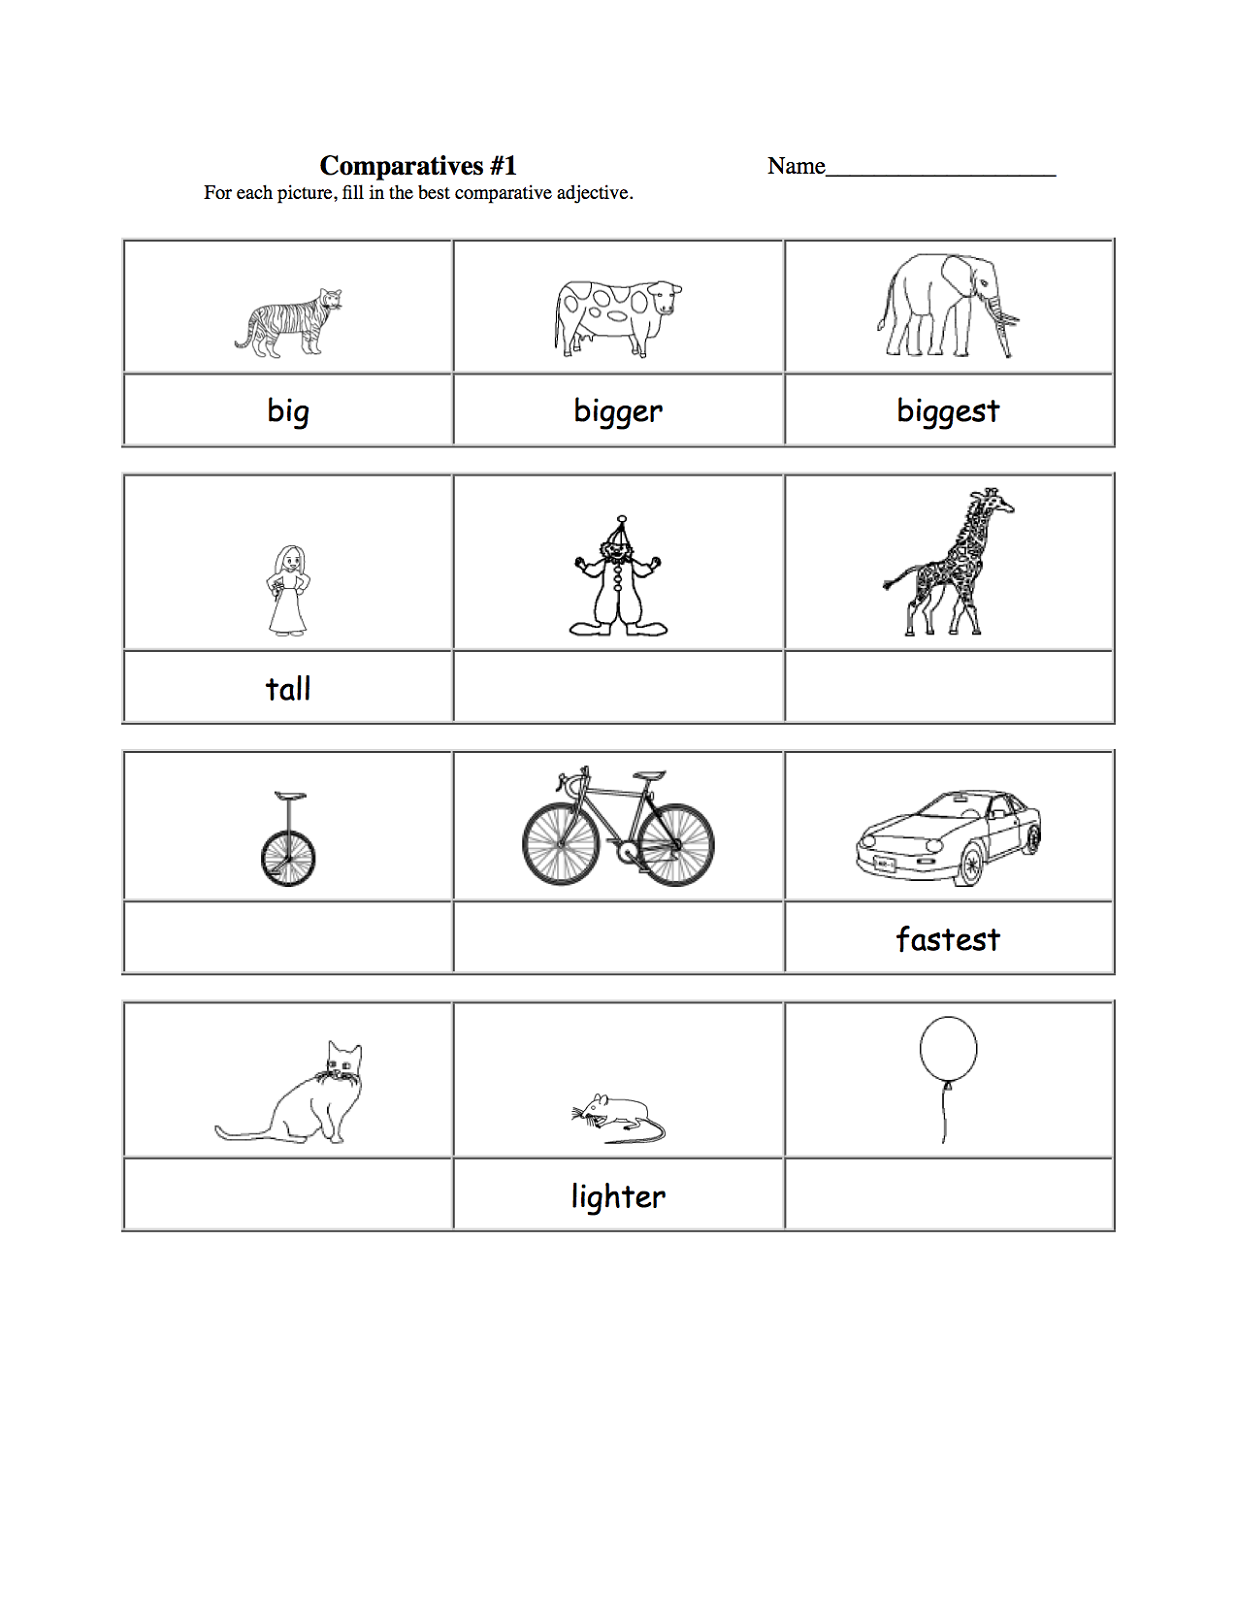 Worksheets for 2 Years Old Children – Worksheets for 2 Year Olds